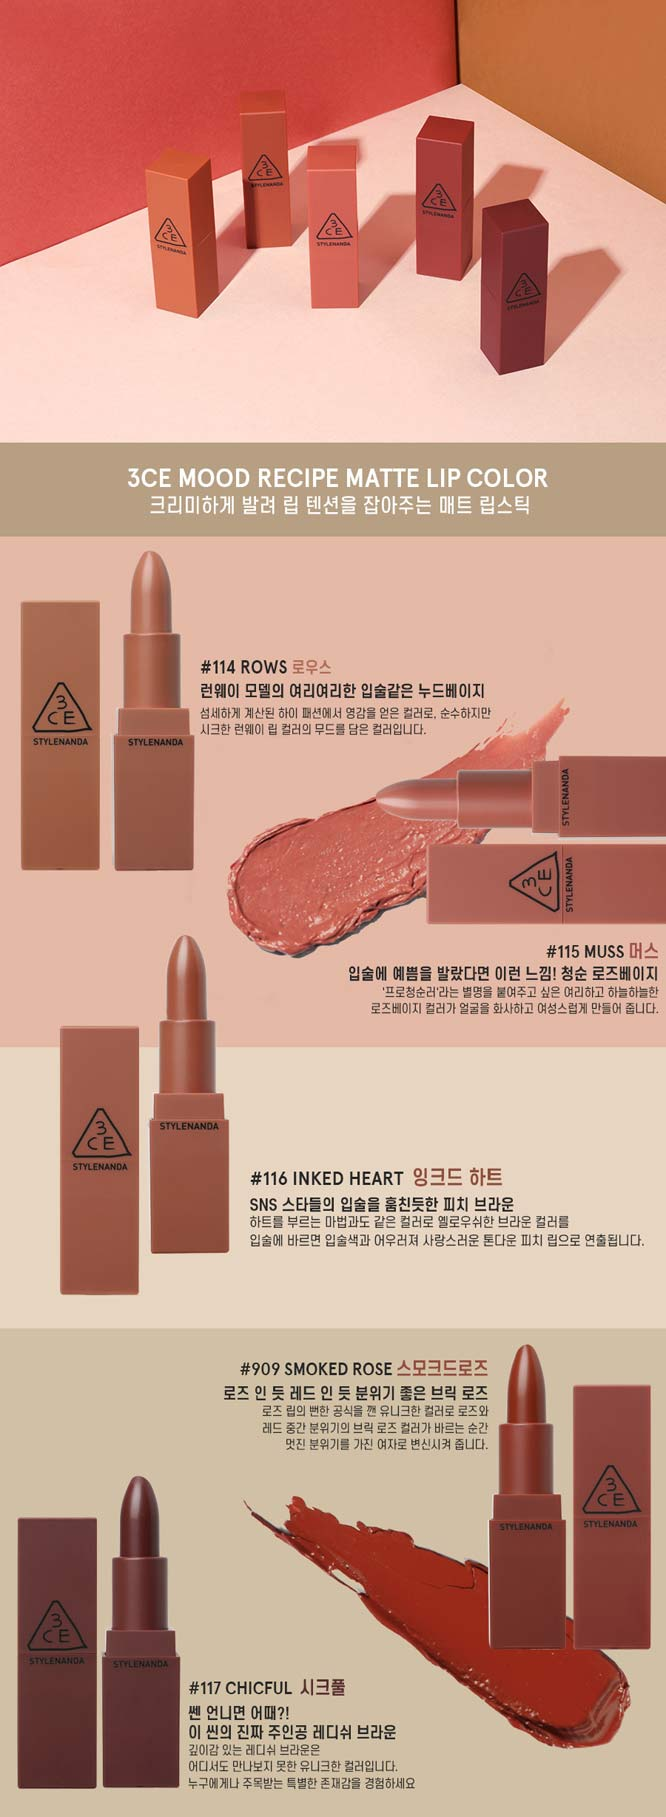 3CE Mood Recipe Matte Lip Color #909_1